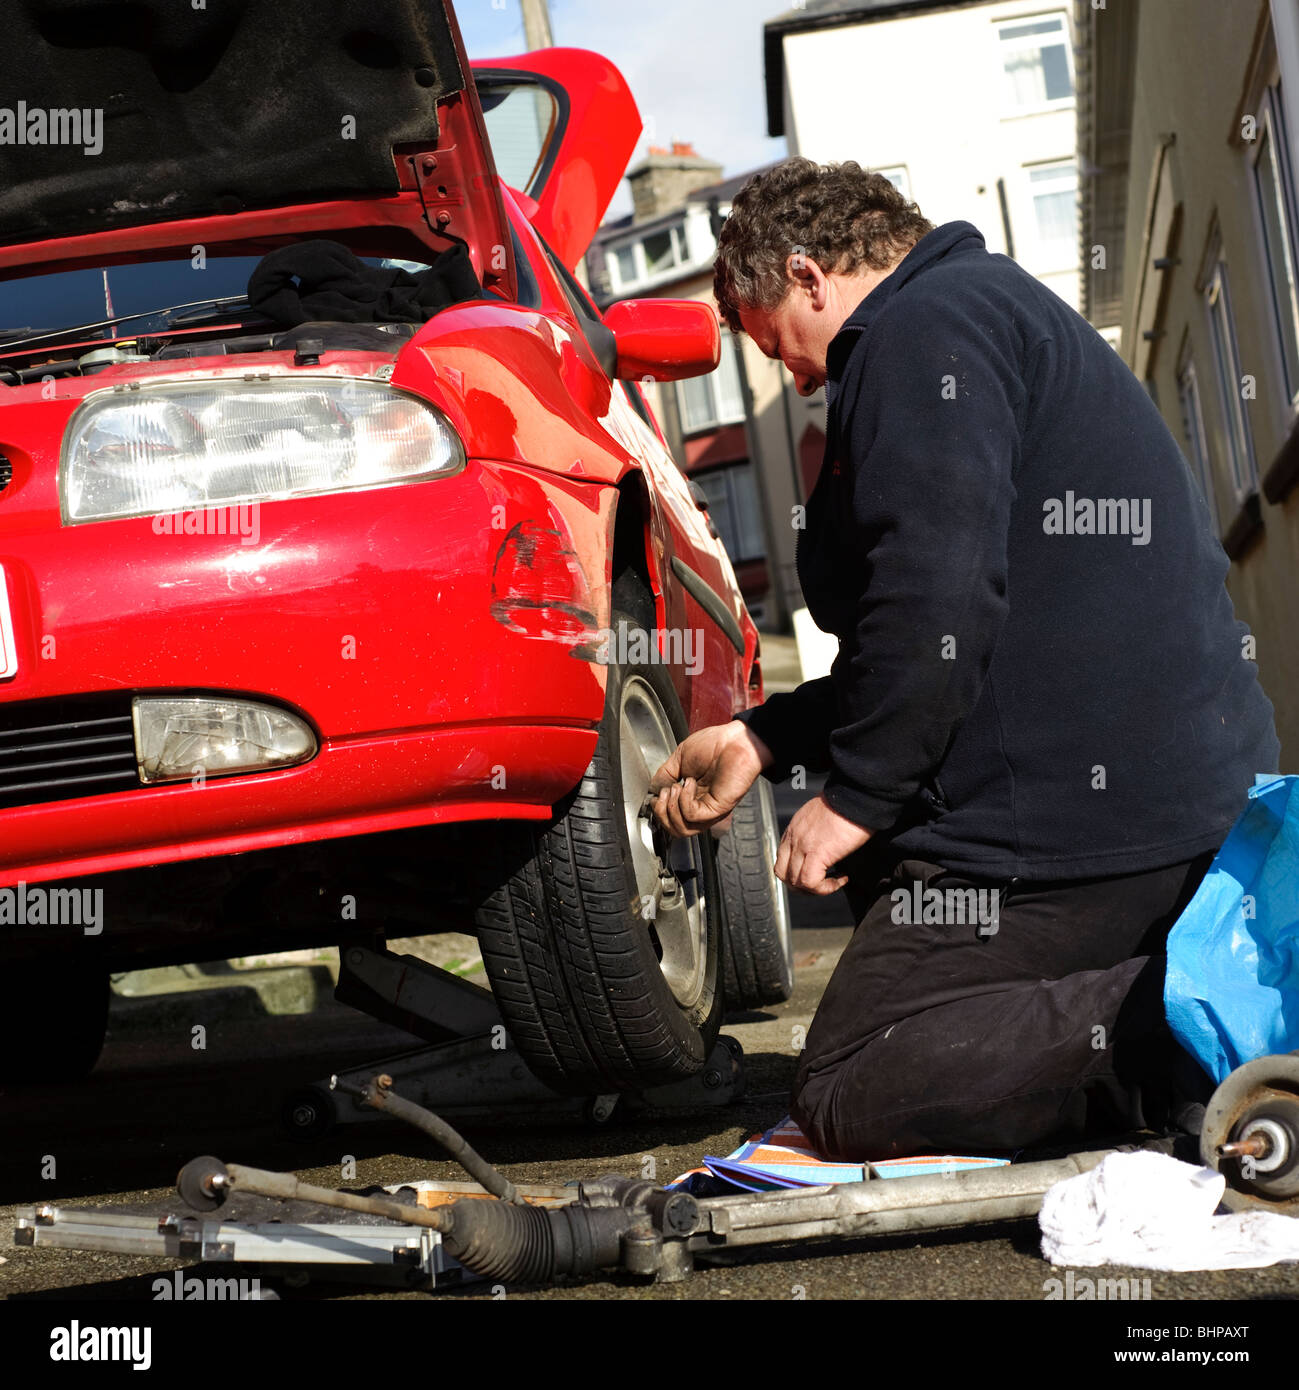 Man fixing wheel on a red car, UK - repairing wheel changing tyre - Stock Image